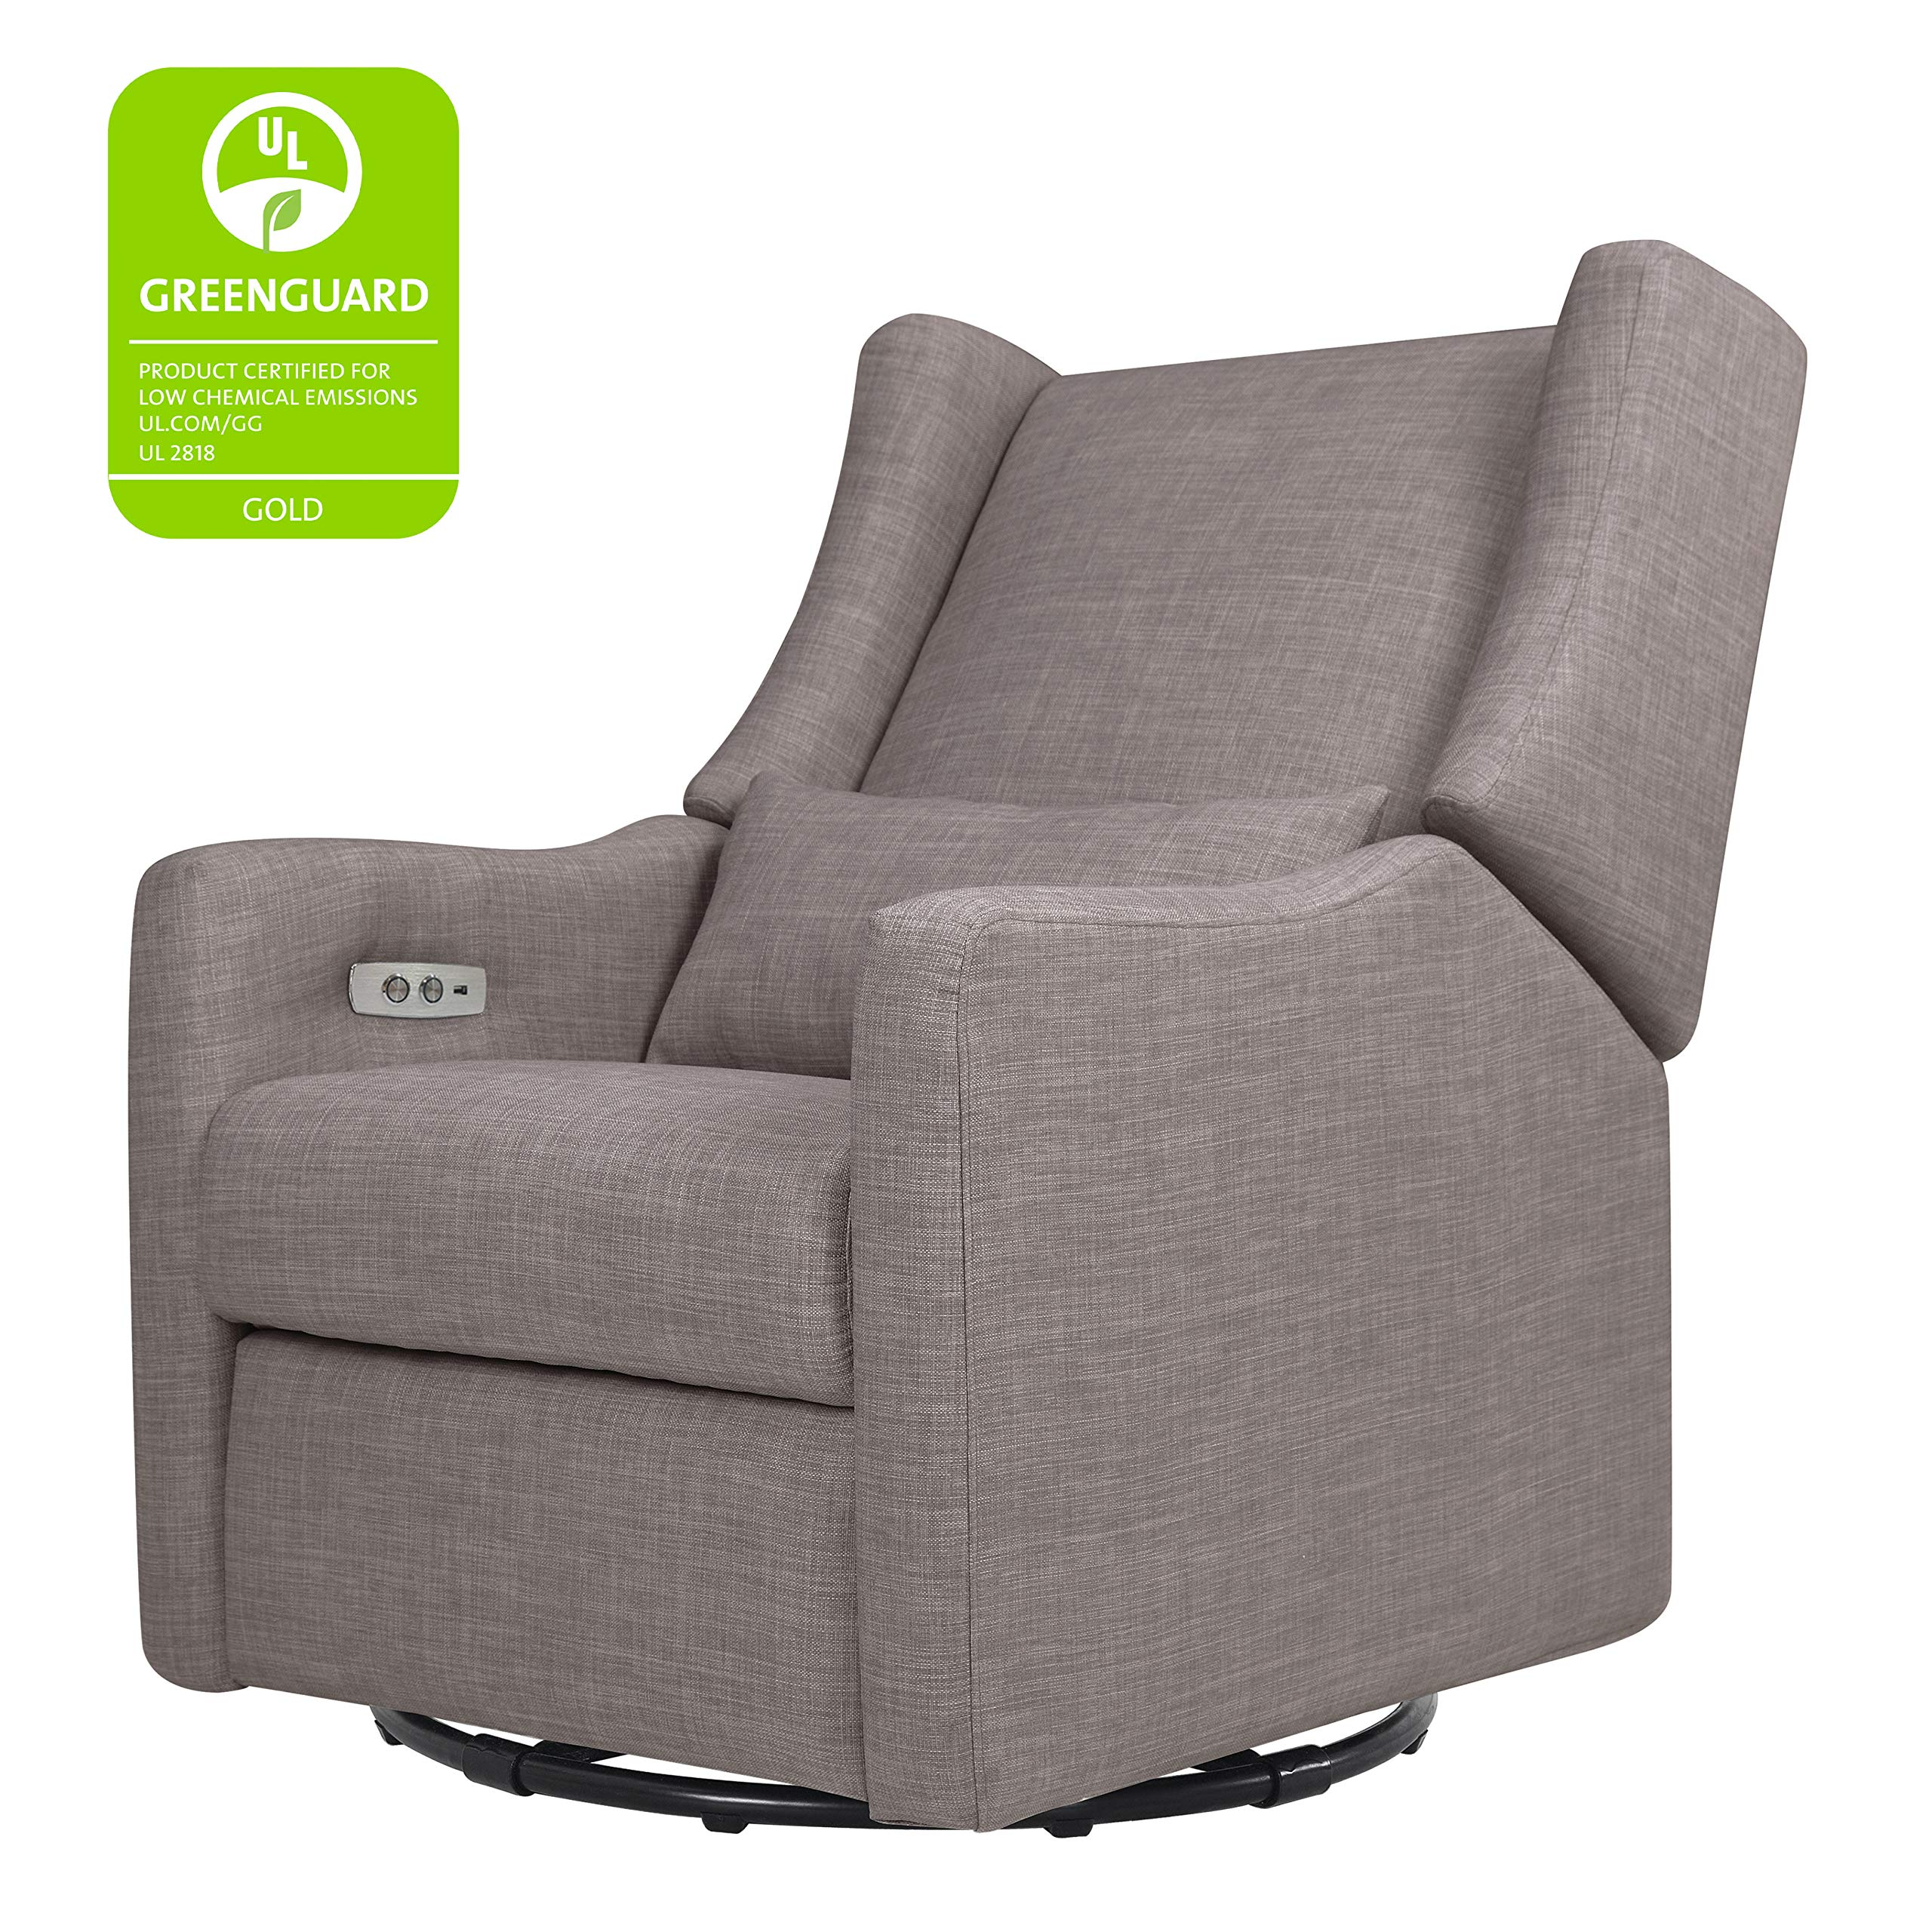 Babyletto Kiwi Electronic Power Recliner and Swivel Glider with USB Port, Grey Tweed by Babyletto